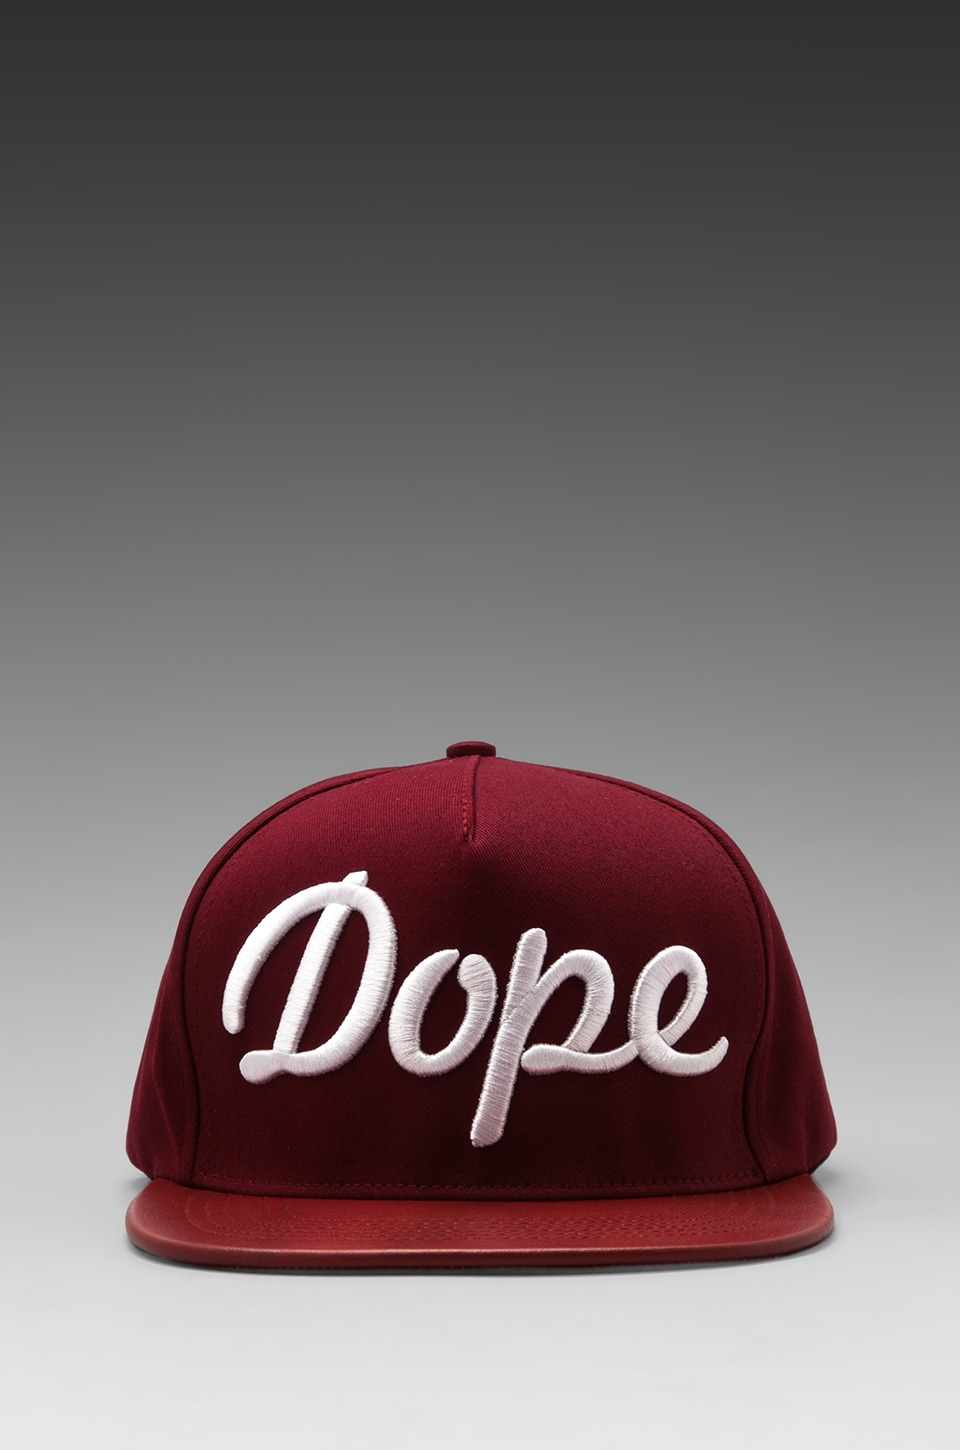 Stampd Dope Hat in Red/White